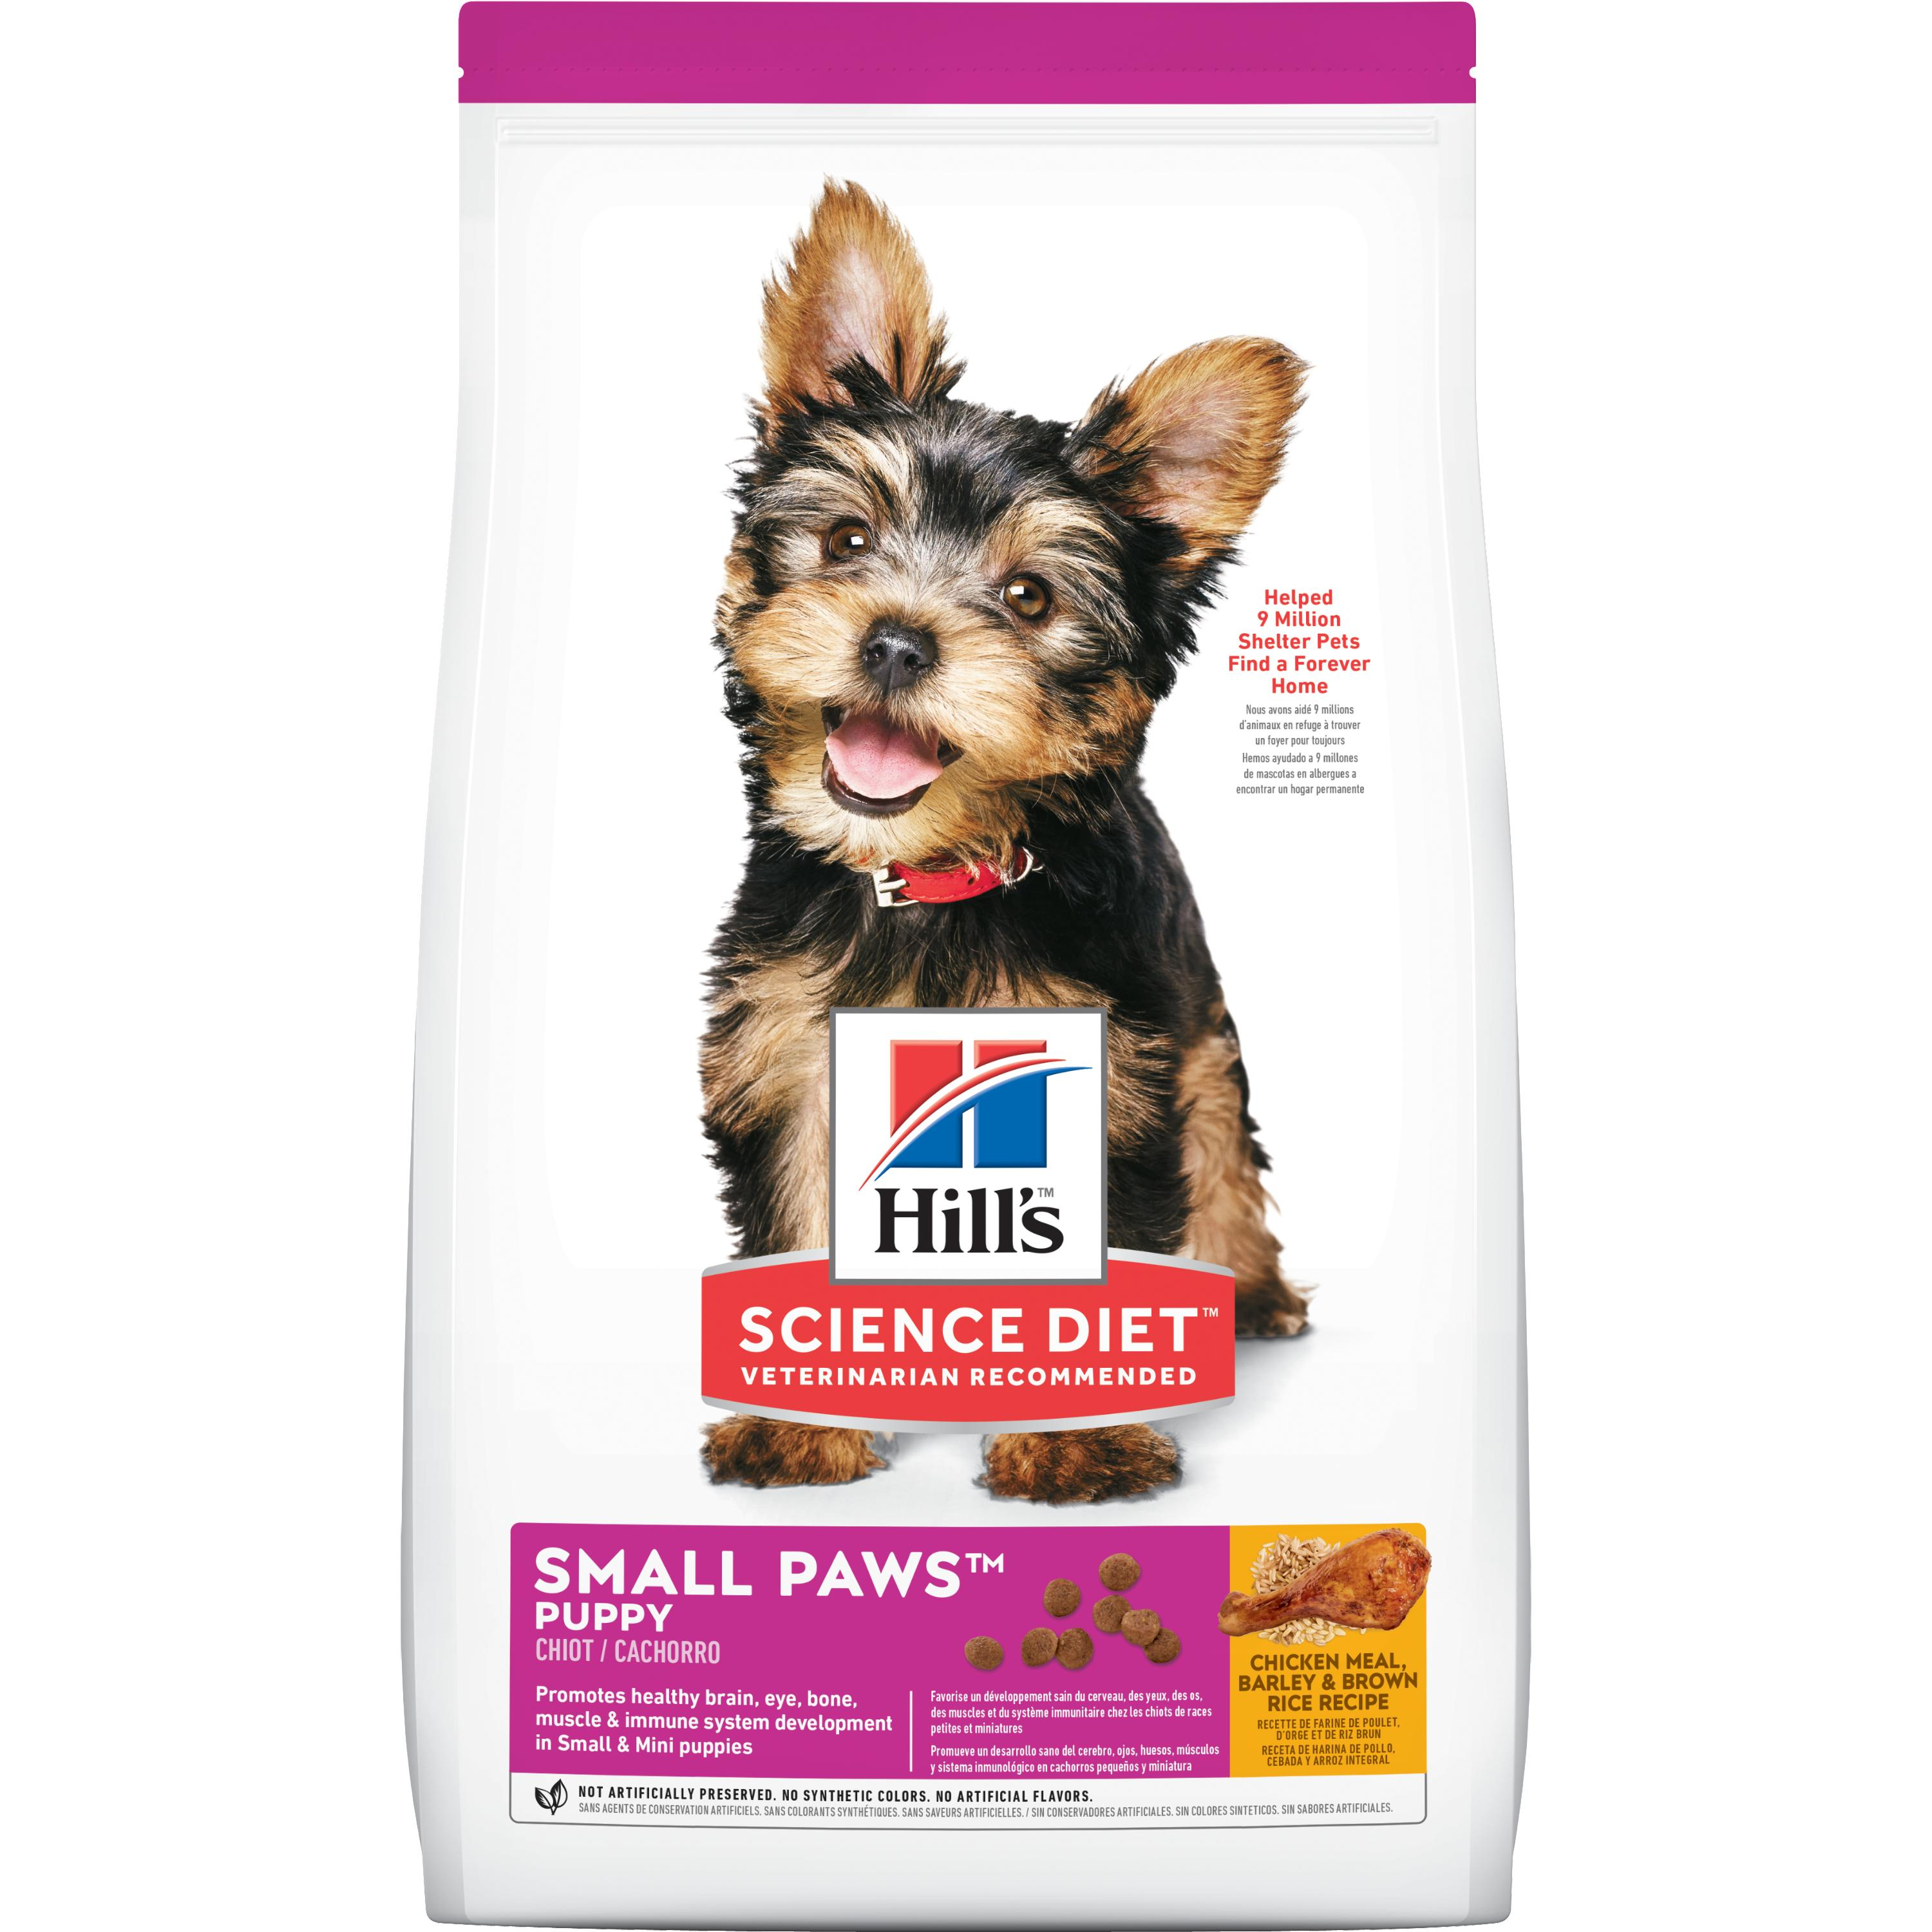 Hill's Science Diet (Spend $20,Get $5) Puppy Small Paws Chicken Meal, Barley & Brown Rice Recipe Dry Dog Food